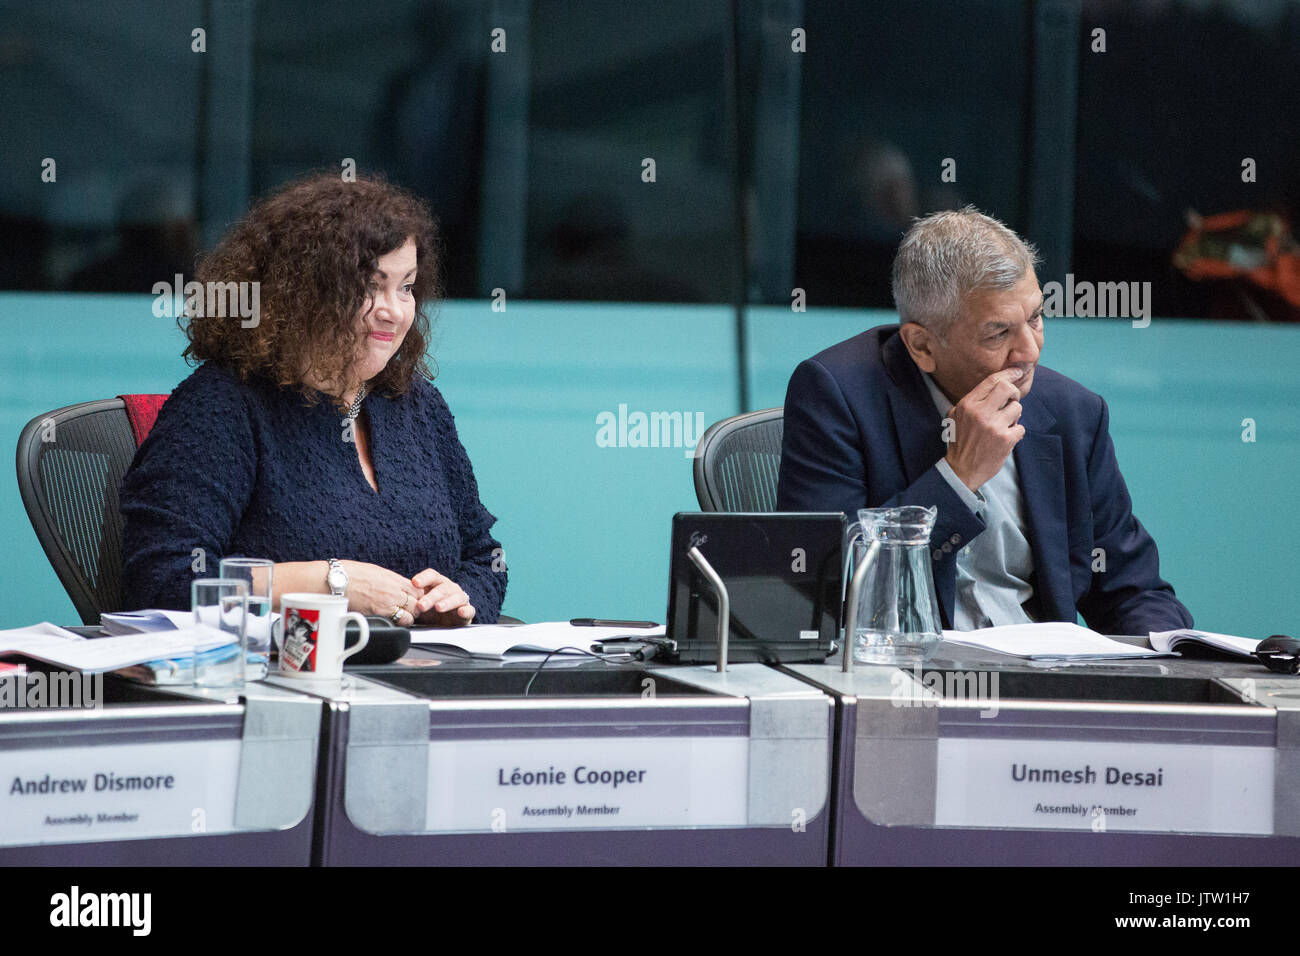 London, UK. 10th August, 2017. London Assembly Members Leonie Cooper and Unmesh Desai listen to Mayor of London Sadiq Khan responding to questions during Mayor's Question Time at City Hall. Among topics discussed were: acid attacks, social housing, expenditure on fire and police services, 4G coverage on underground trains and noise from overnight underground trains. Credit: Mark Kerrison/Alamy Live News - Stock Image